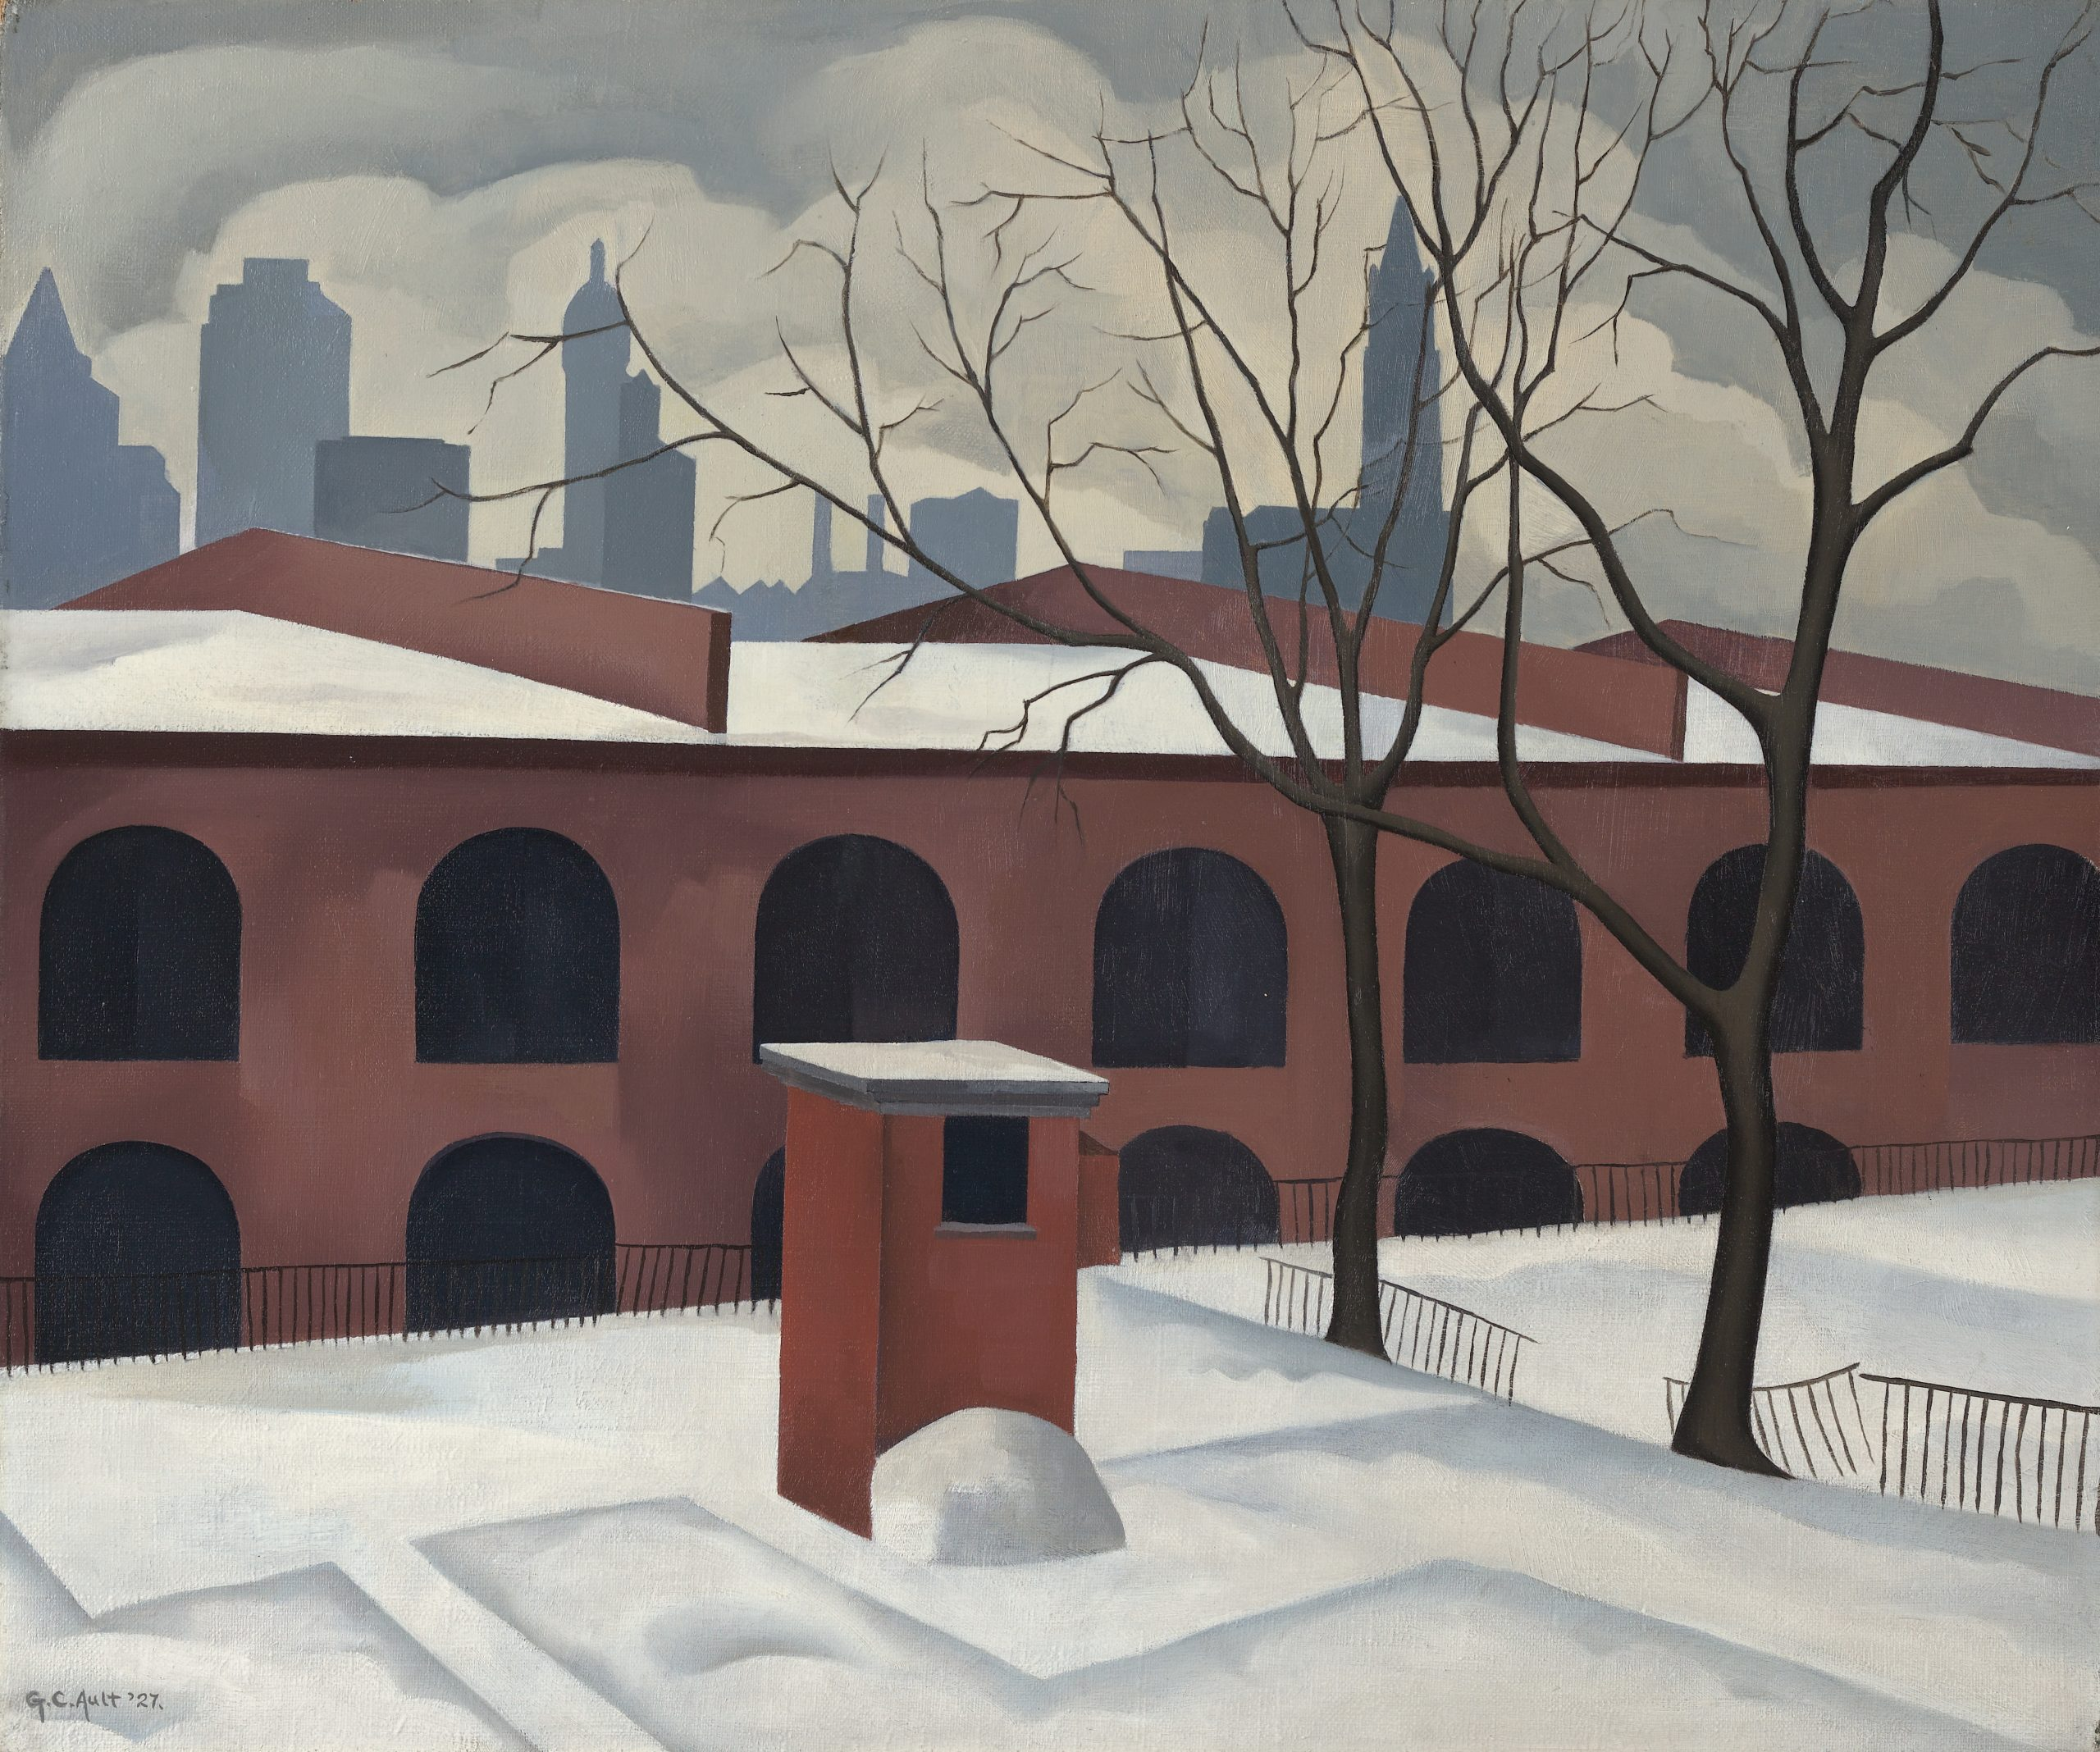 Snowy landscape in front of a wide brick building with rows of black arched windows, with the New York skyline in silhouette against a cloudy sky.